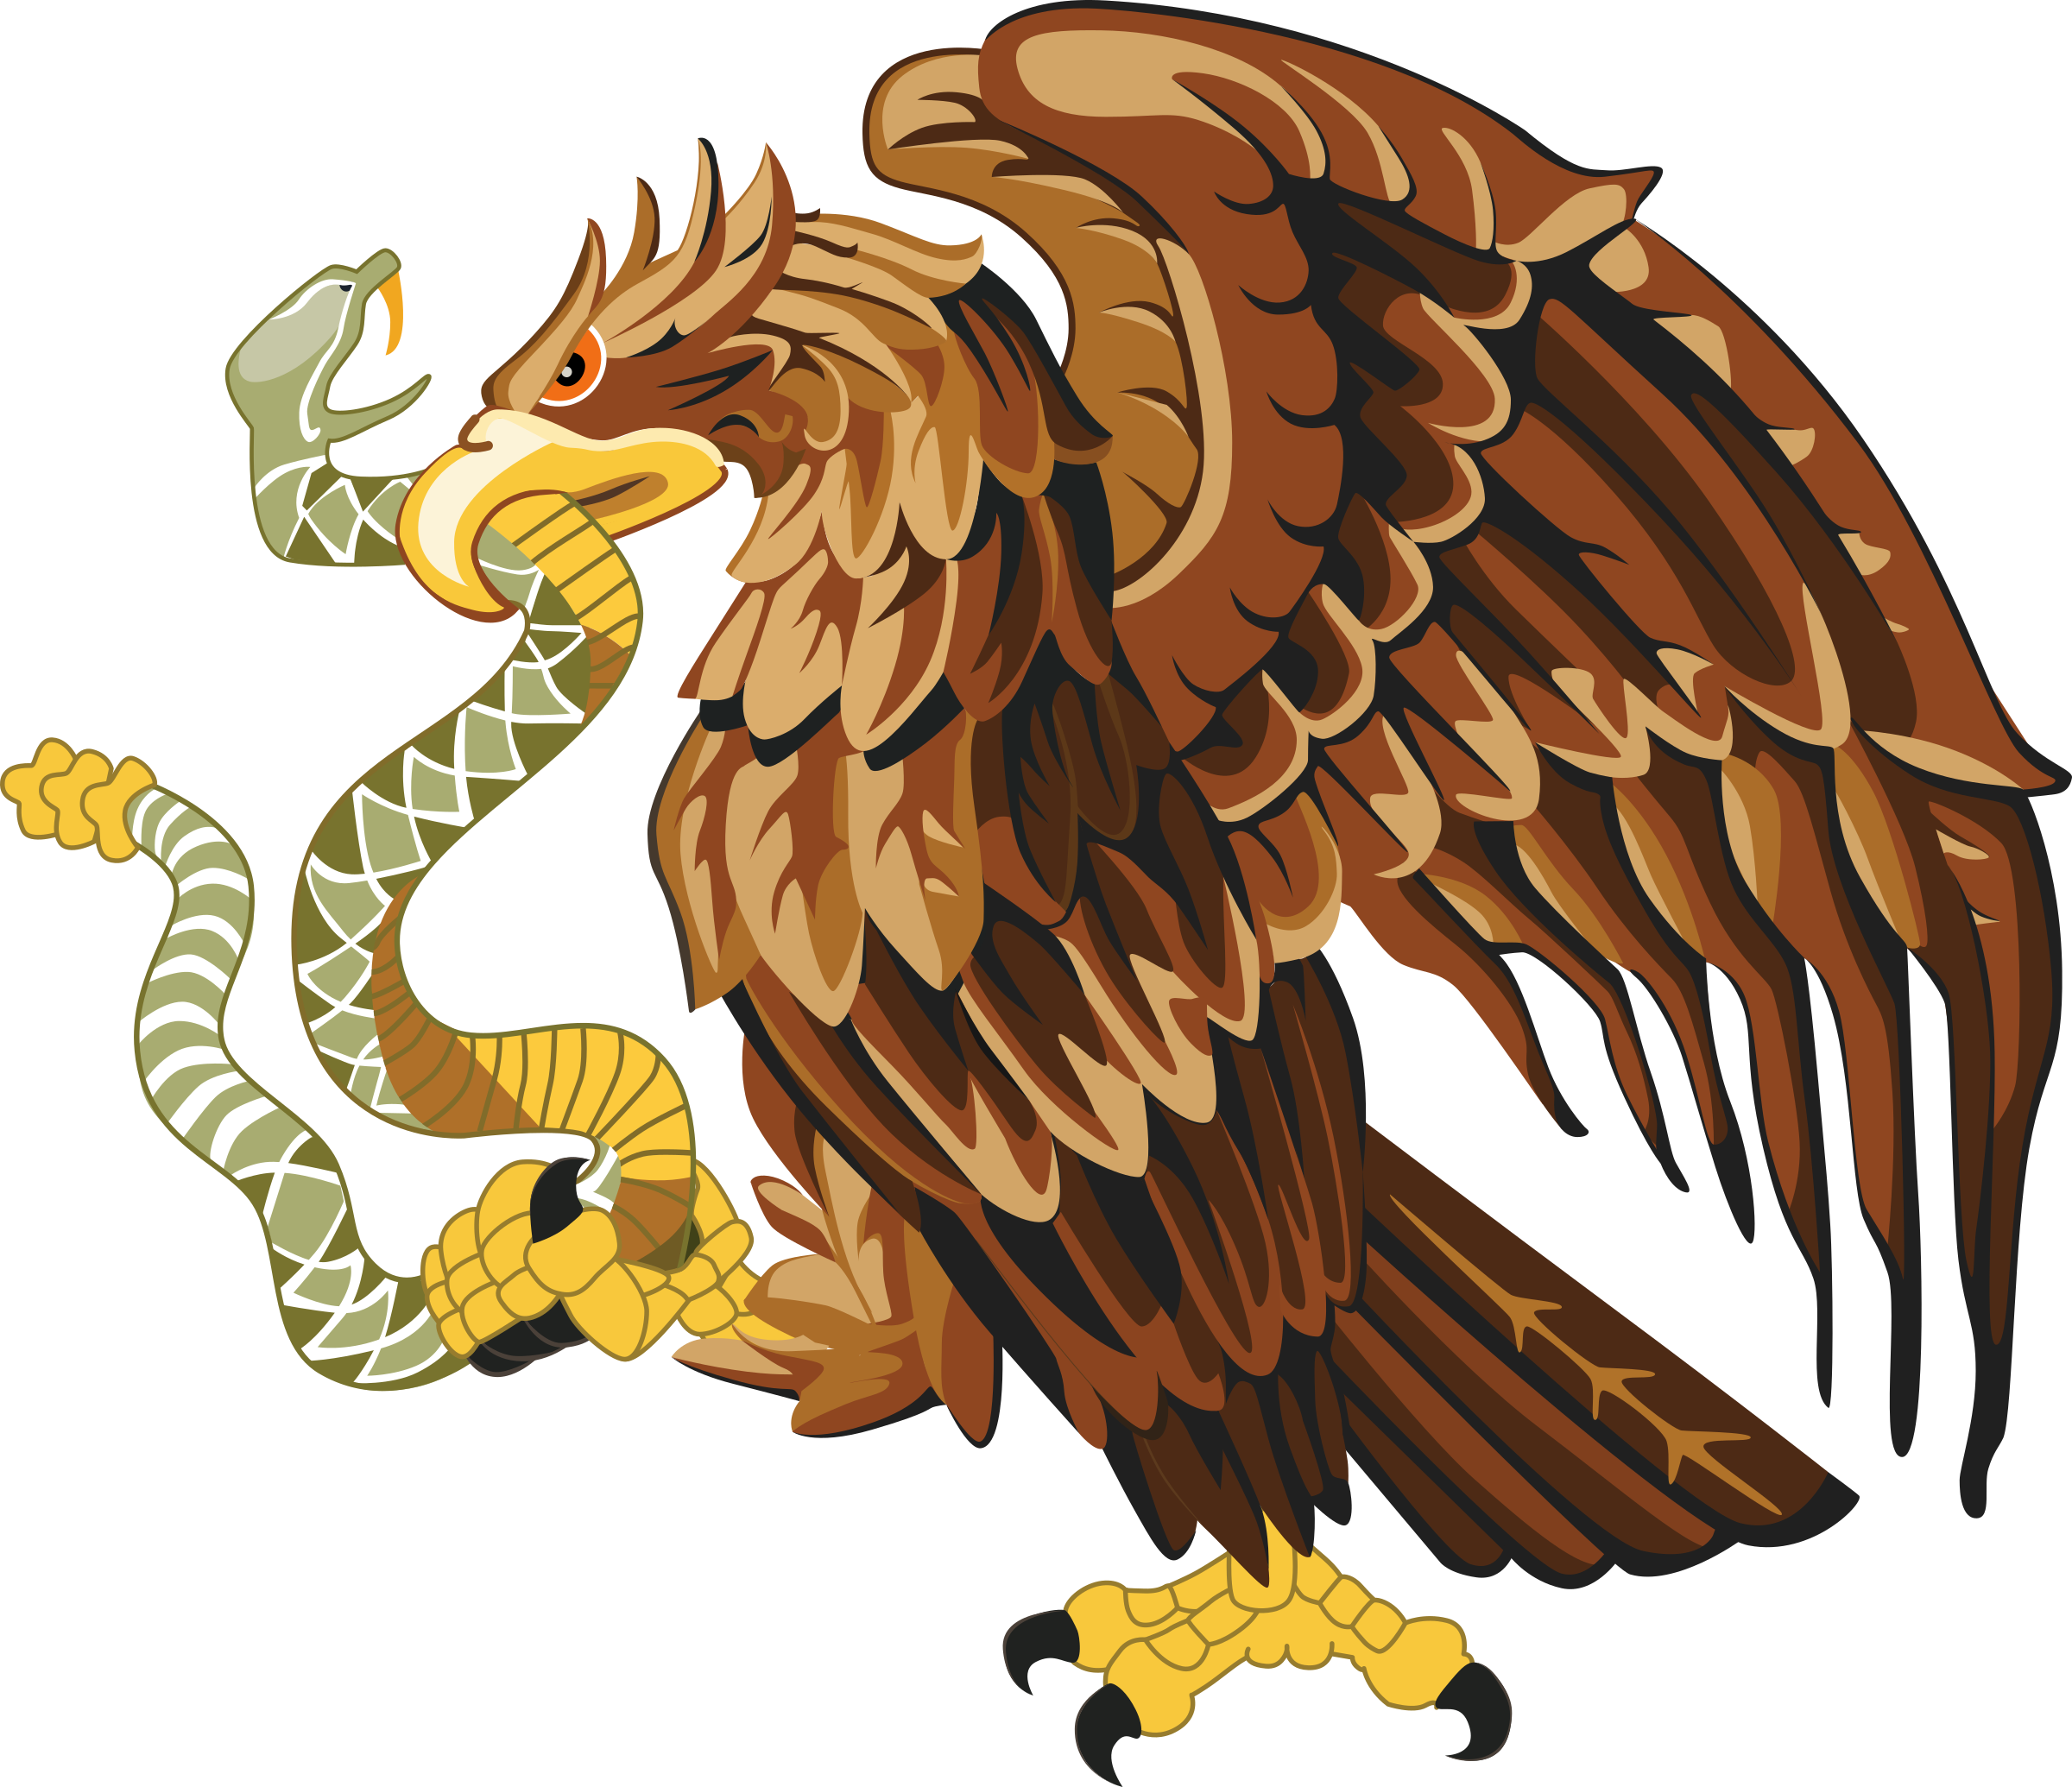 Golden eagle with snake by Firkin